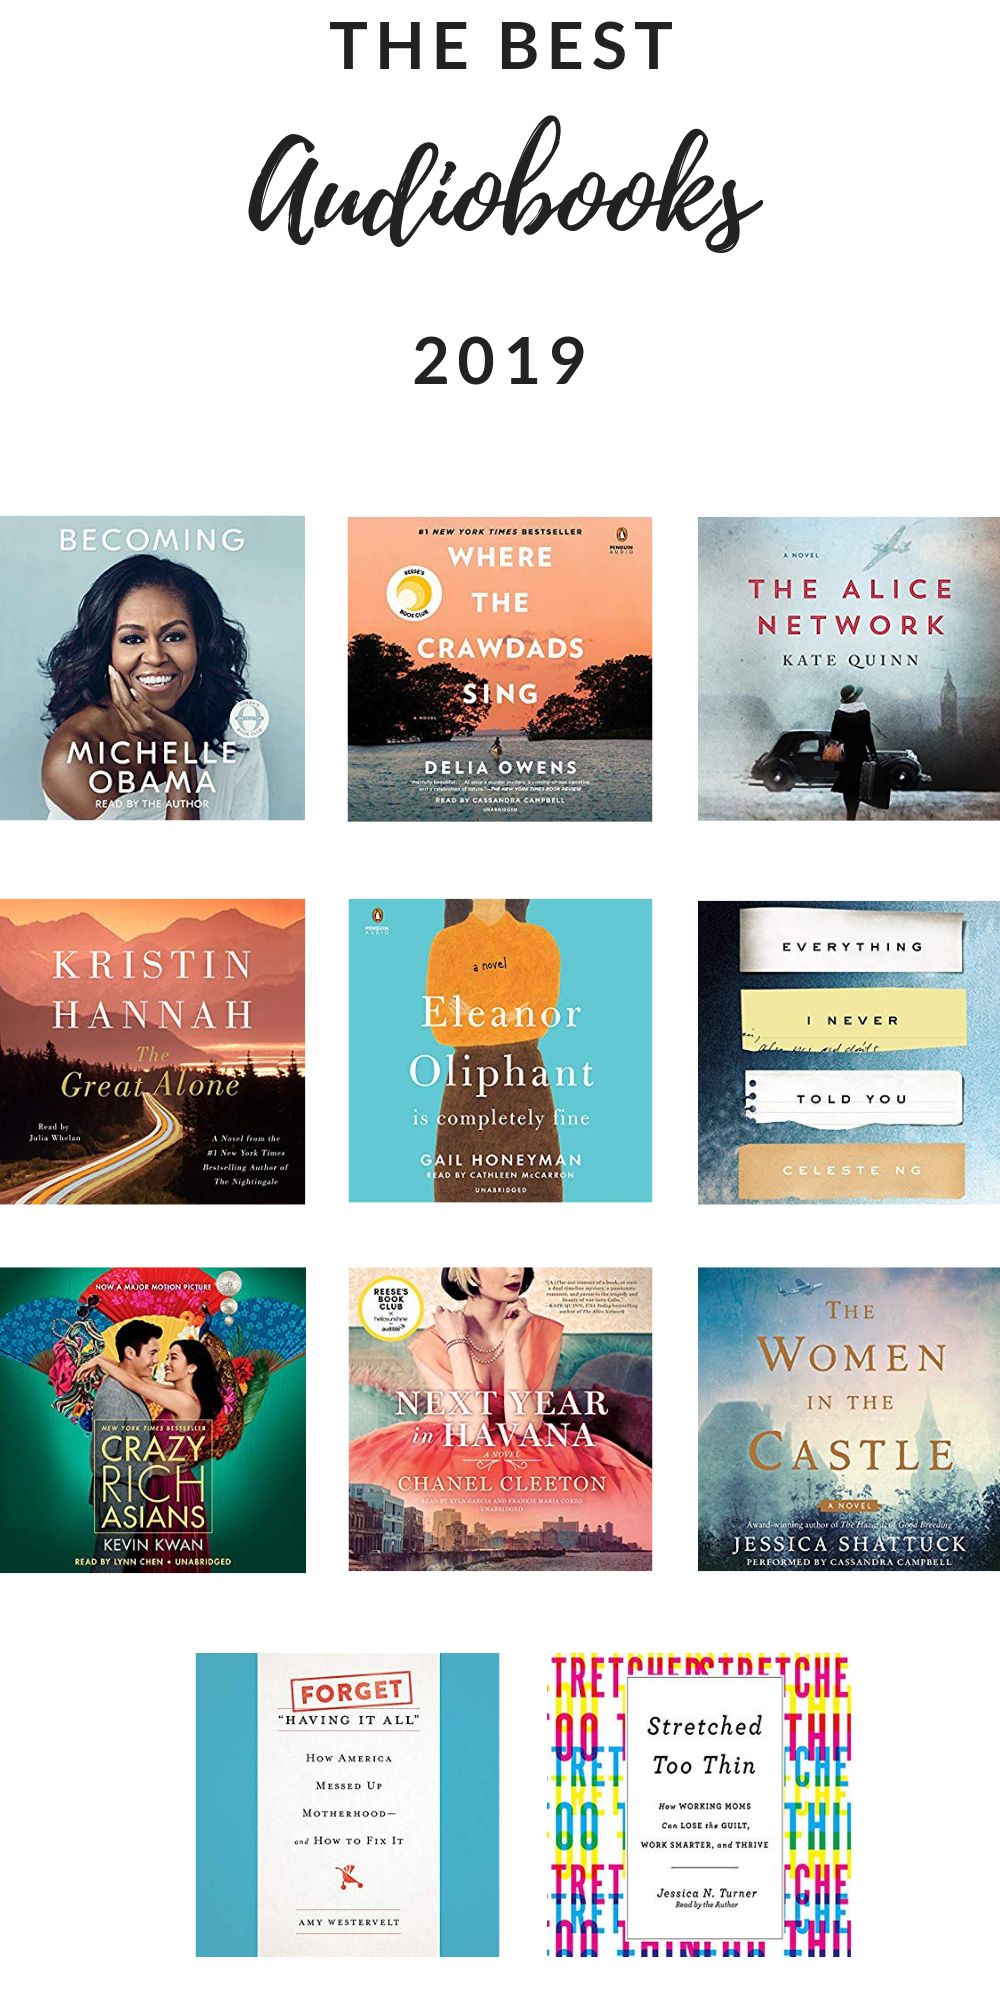 Looking for the best audiobooks to listen to? Check out this post for my top picks so far this year, along with a chance to get 2 audiobooks with your free trial!